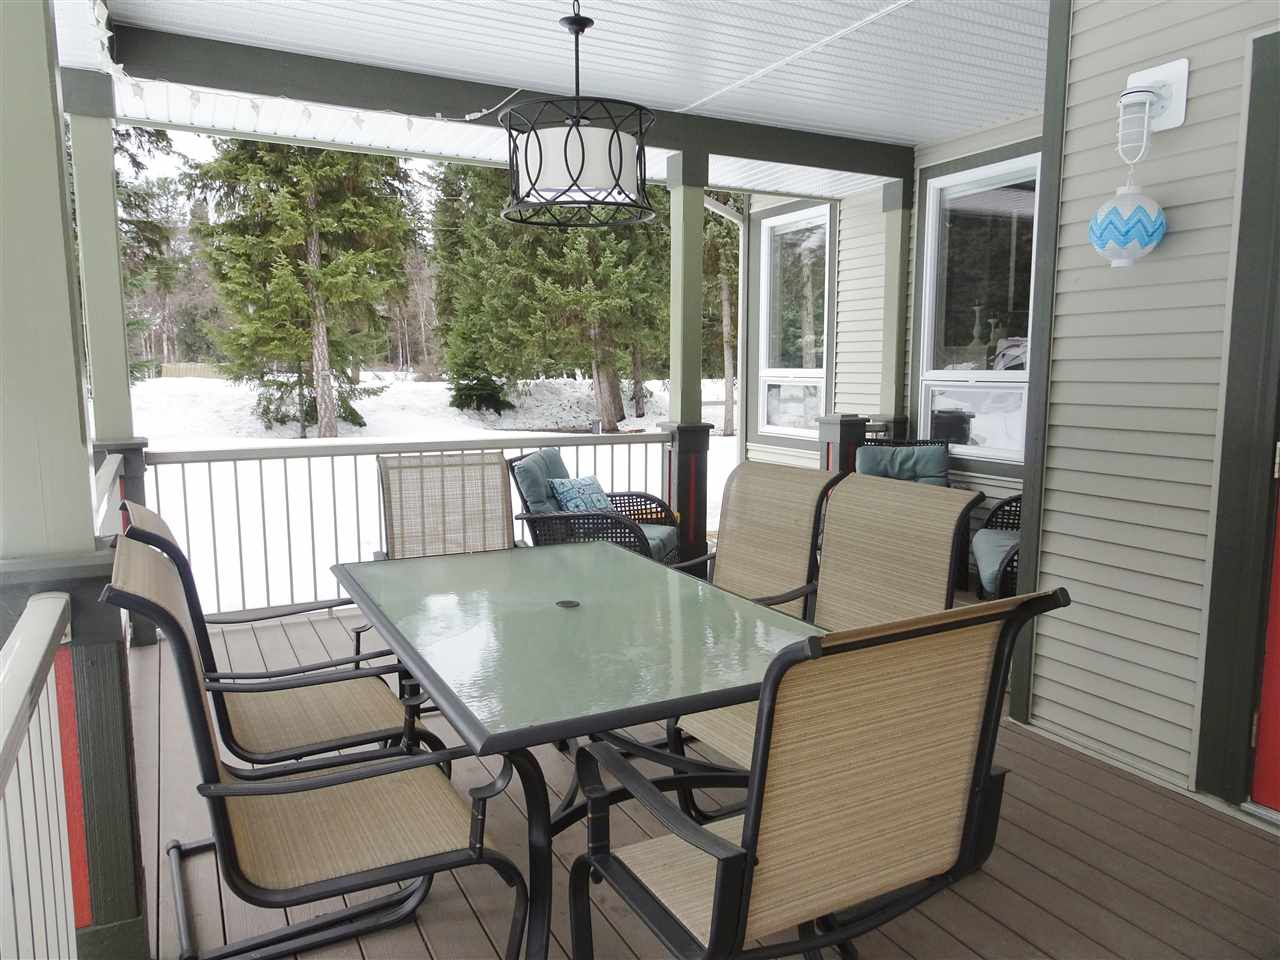 """Photo 20: Photos: 6447 BENCH Drive in Prince George: Nechako Bench House for sale in """"NORTH NECHAKO"""" (PG City North (Zone 73))  : MLS®# R2250059"""